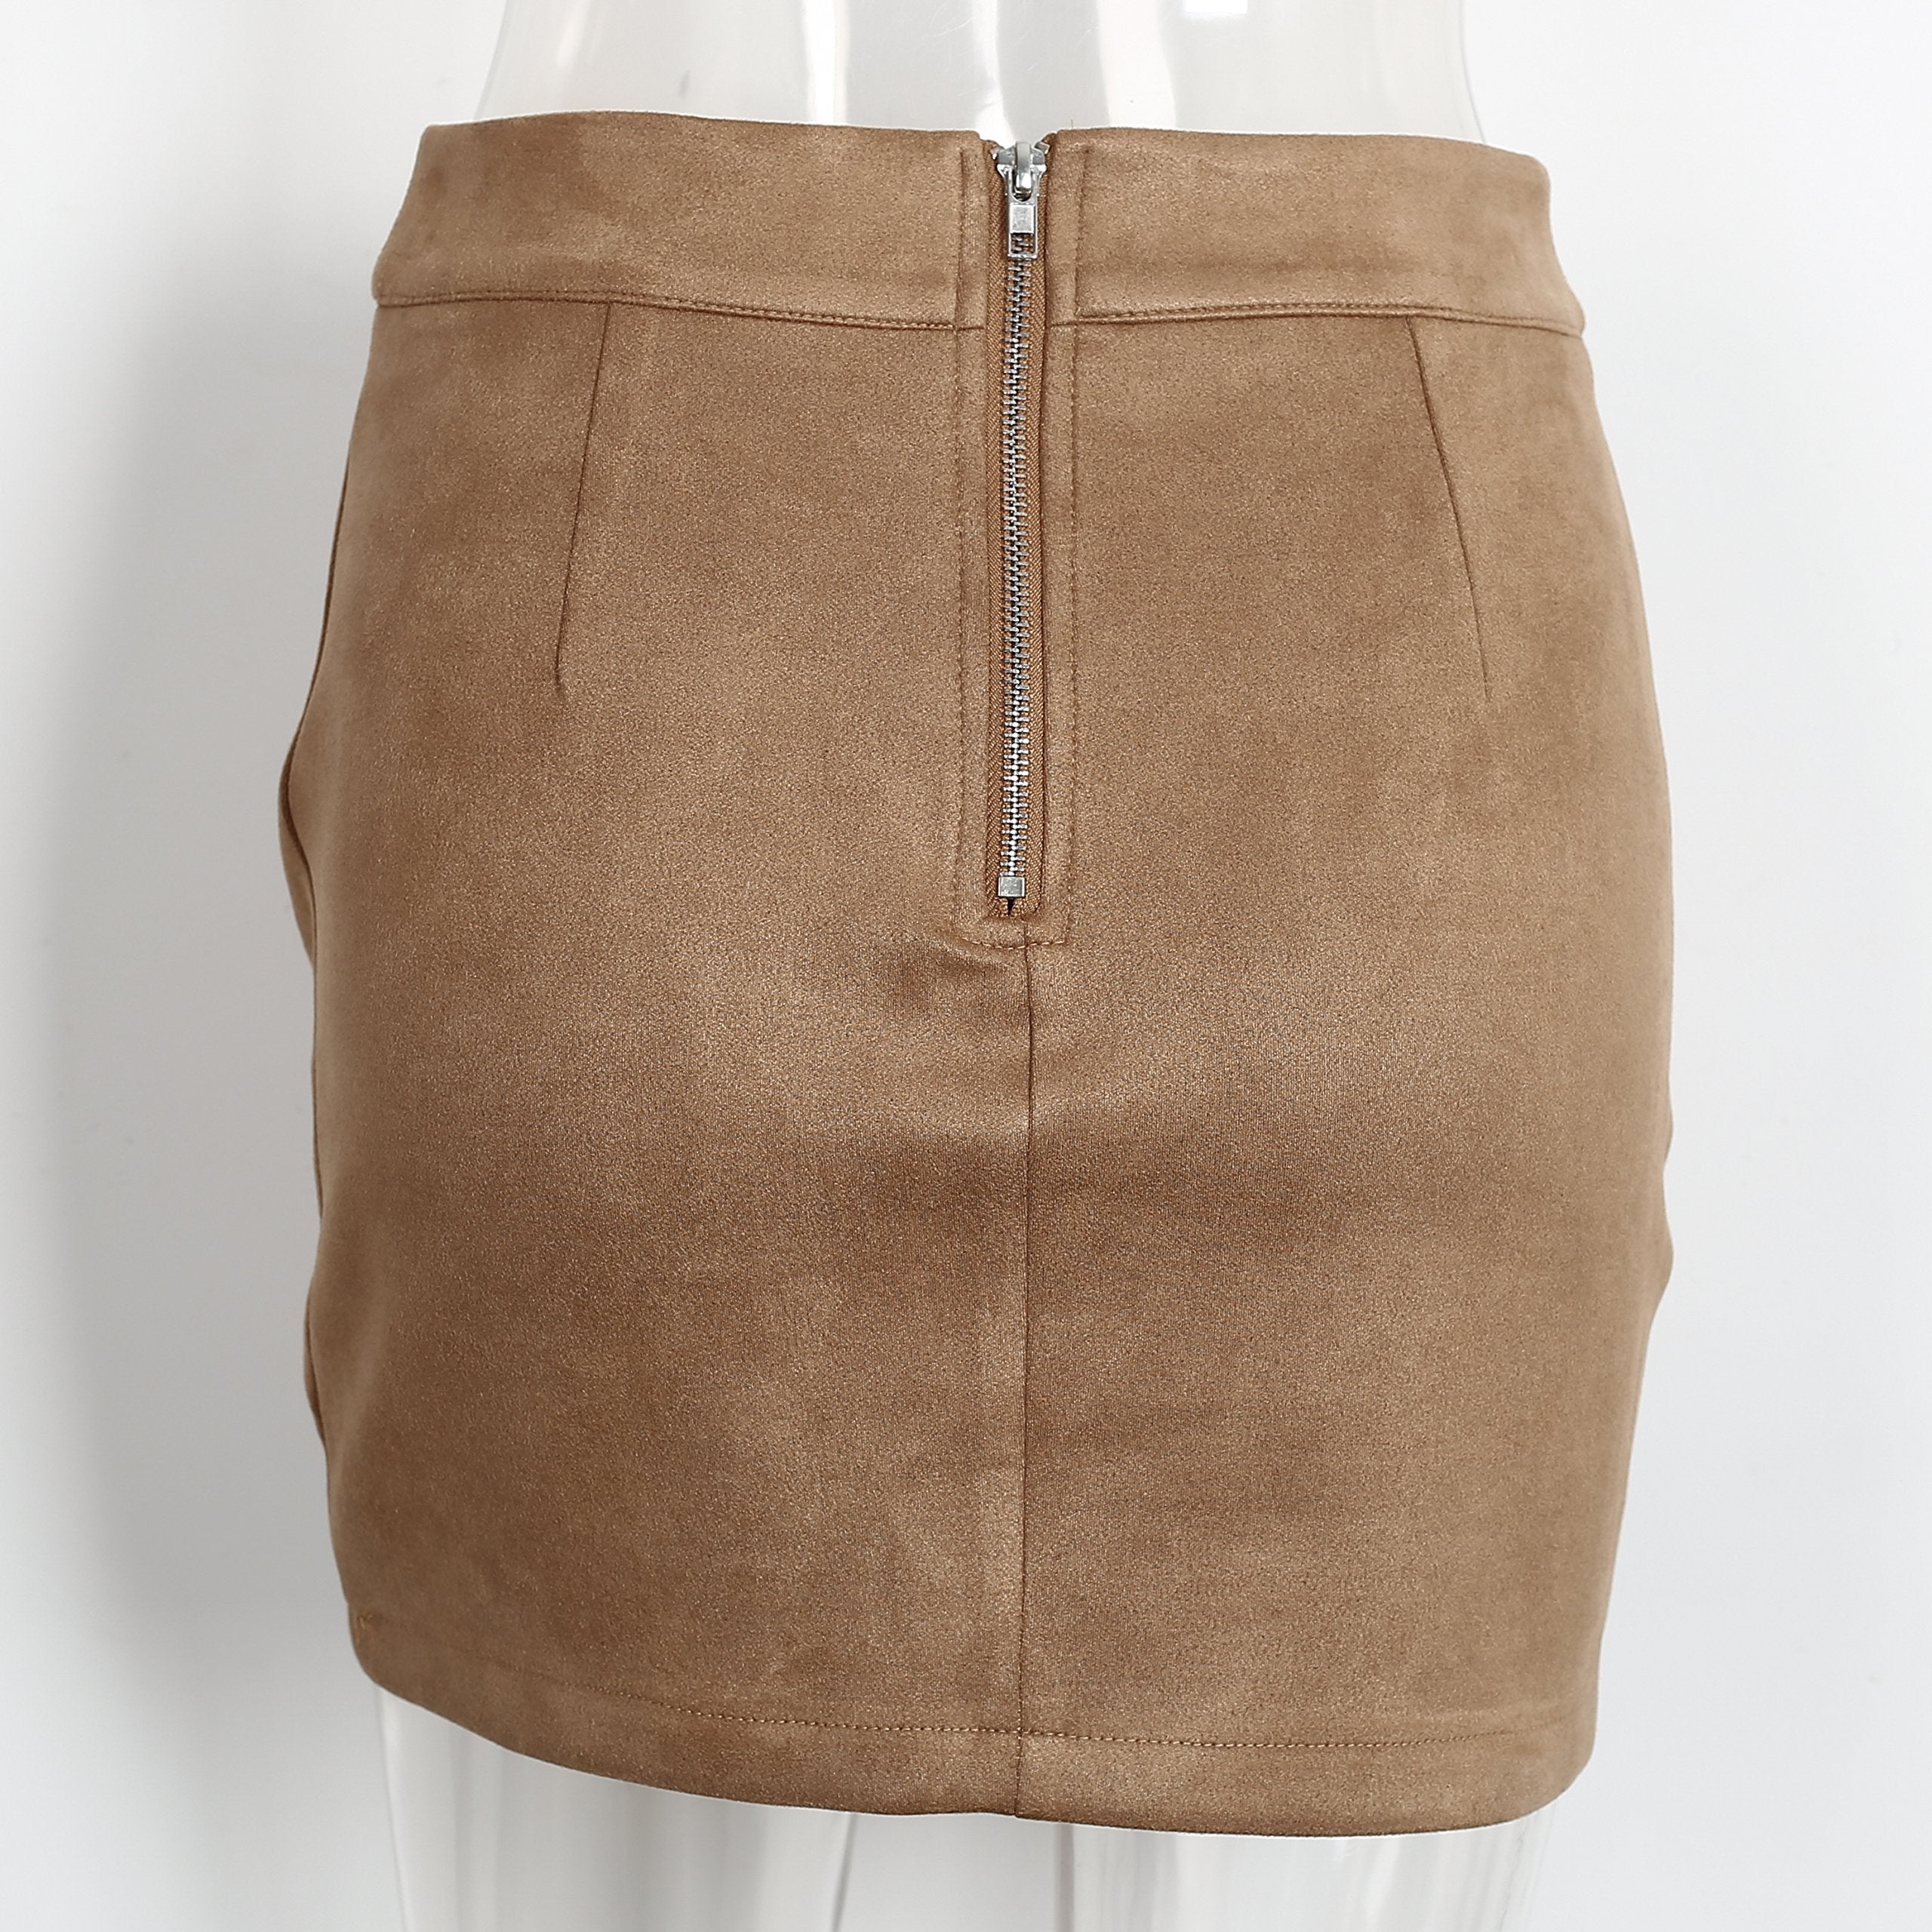 Simplee Apparel Women's High Waist Faux Suede Mini Short Bodycon Skirt Camel,Size 4/6 (M)